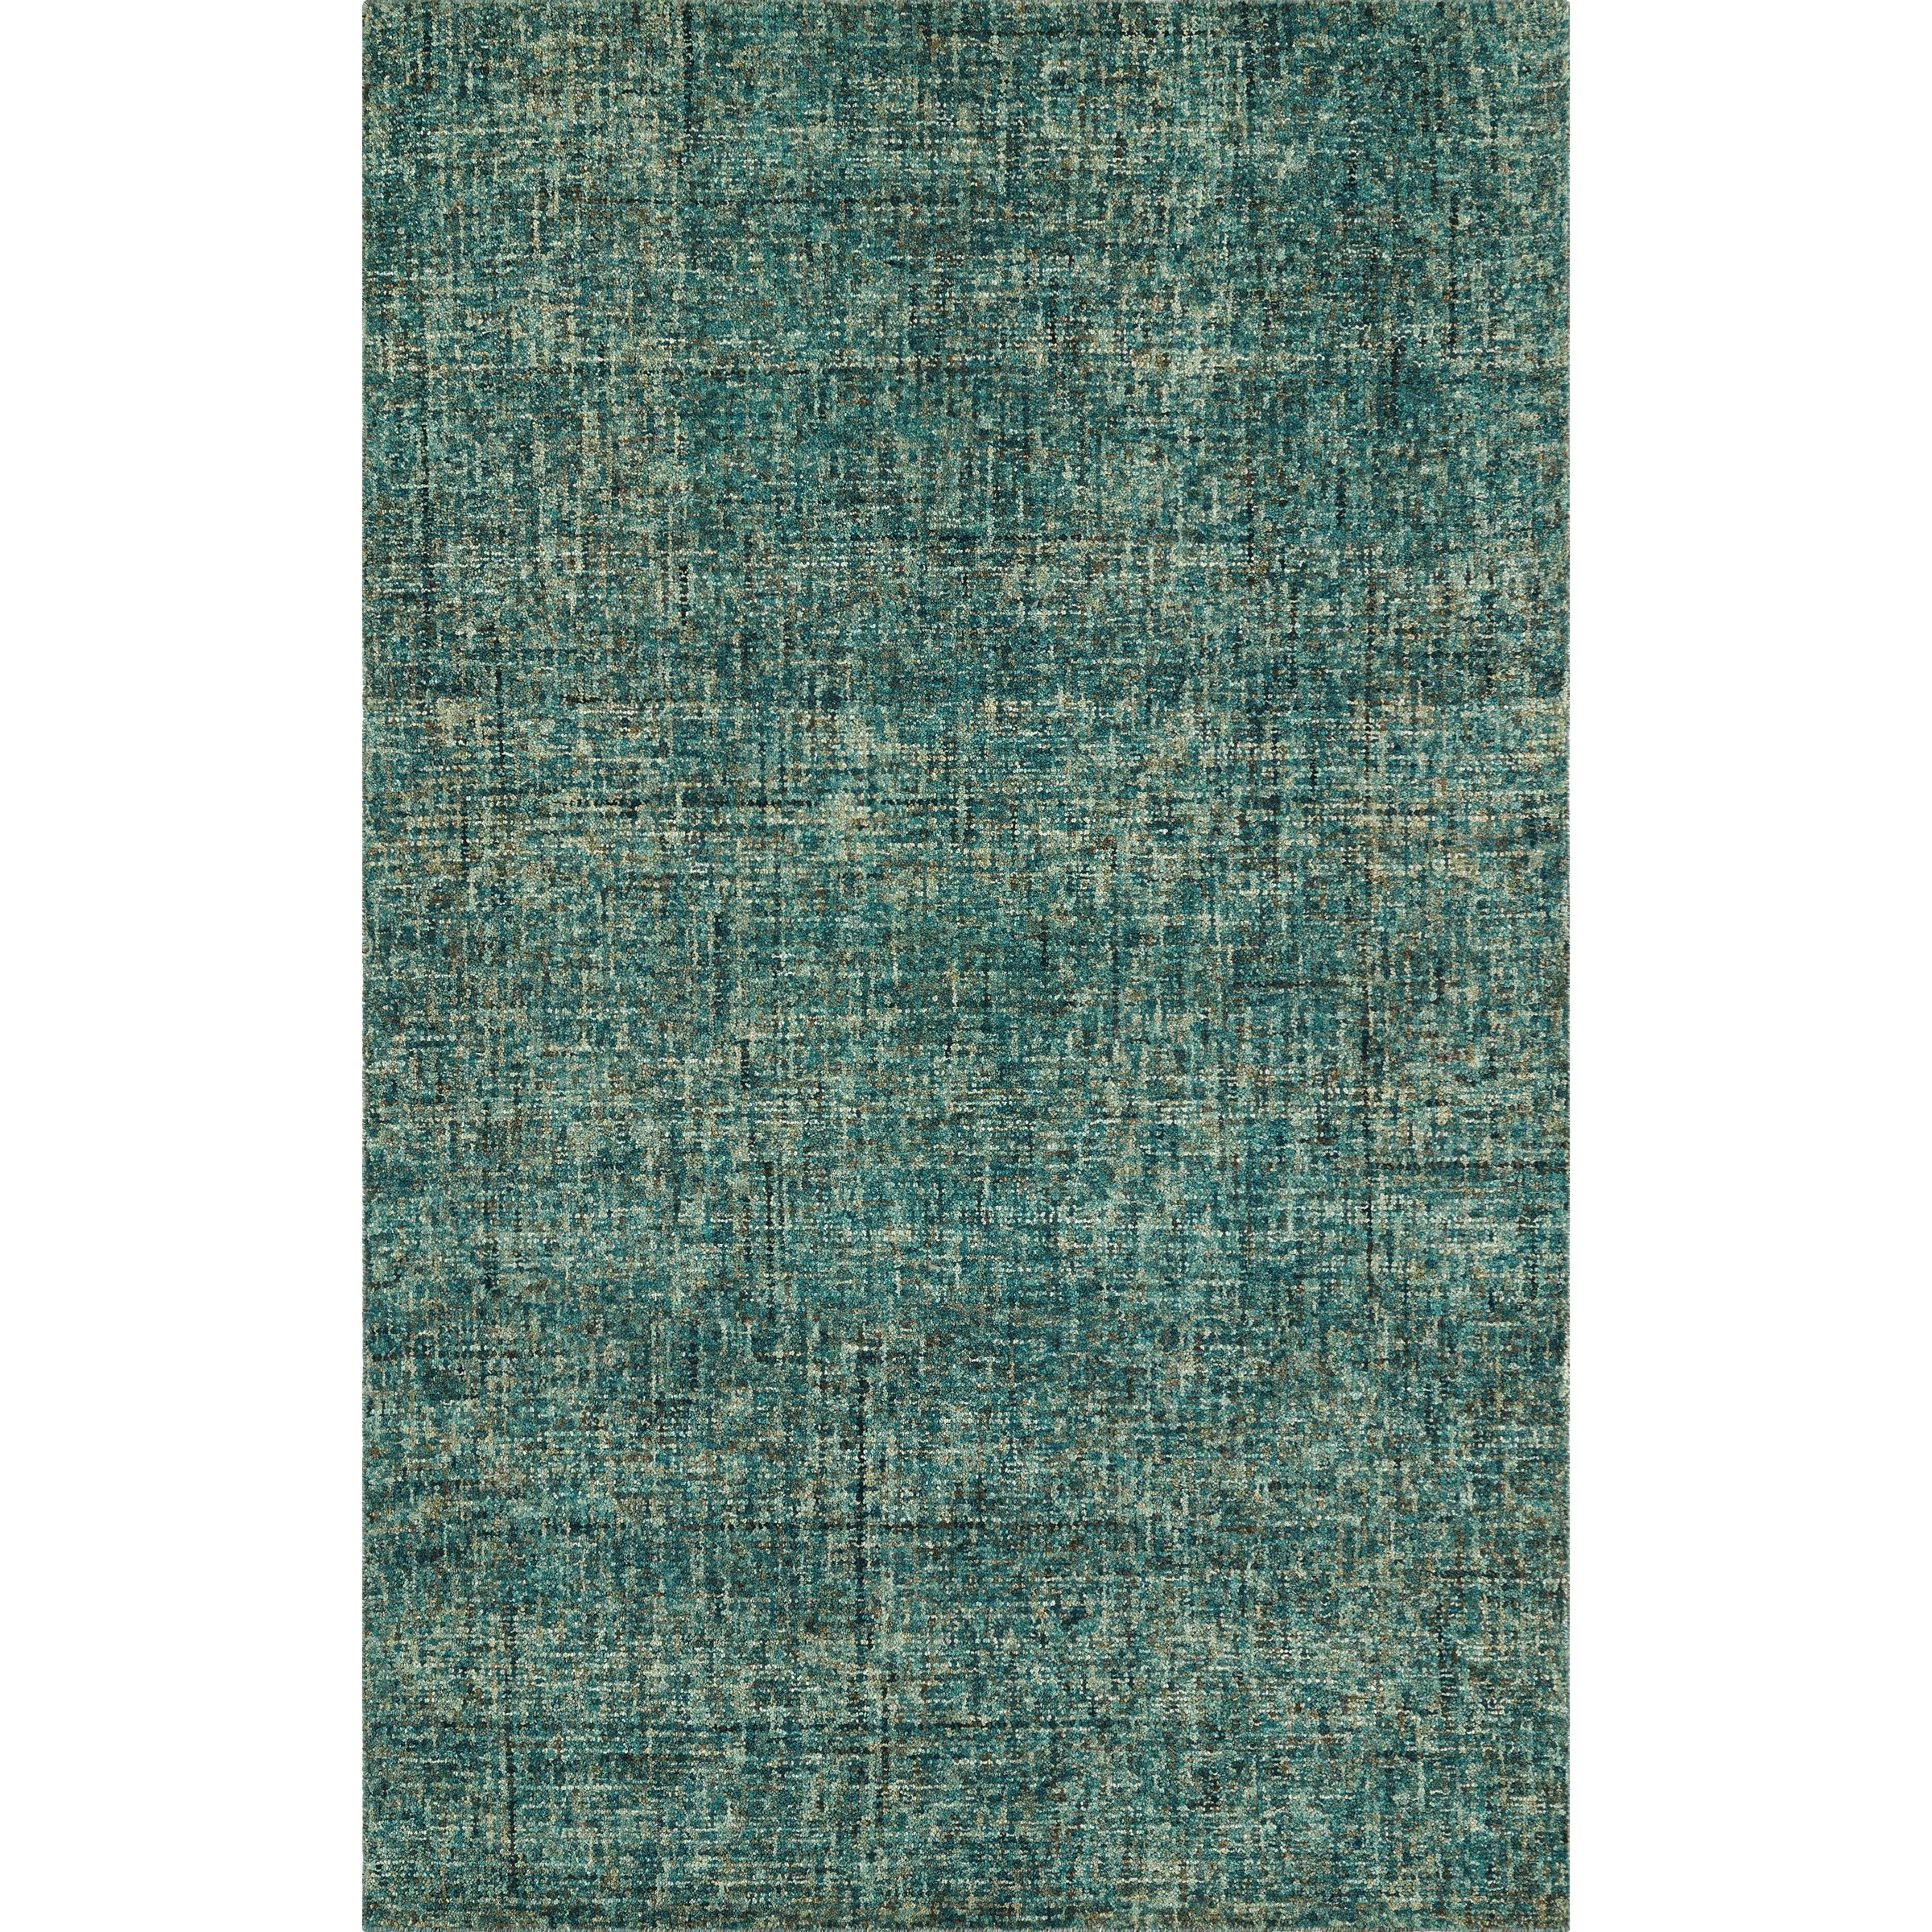 """Calisa Turquoise 5'X7'6"""" Rug by Dalyn at Fashion Furniture"""